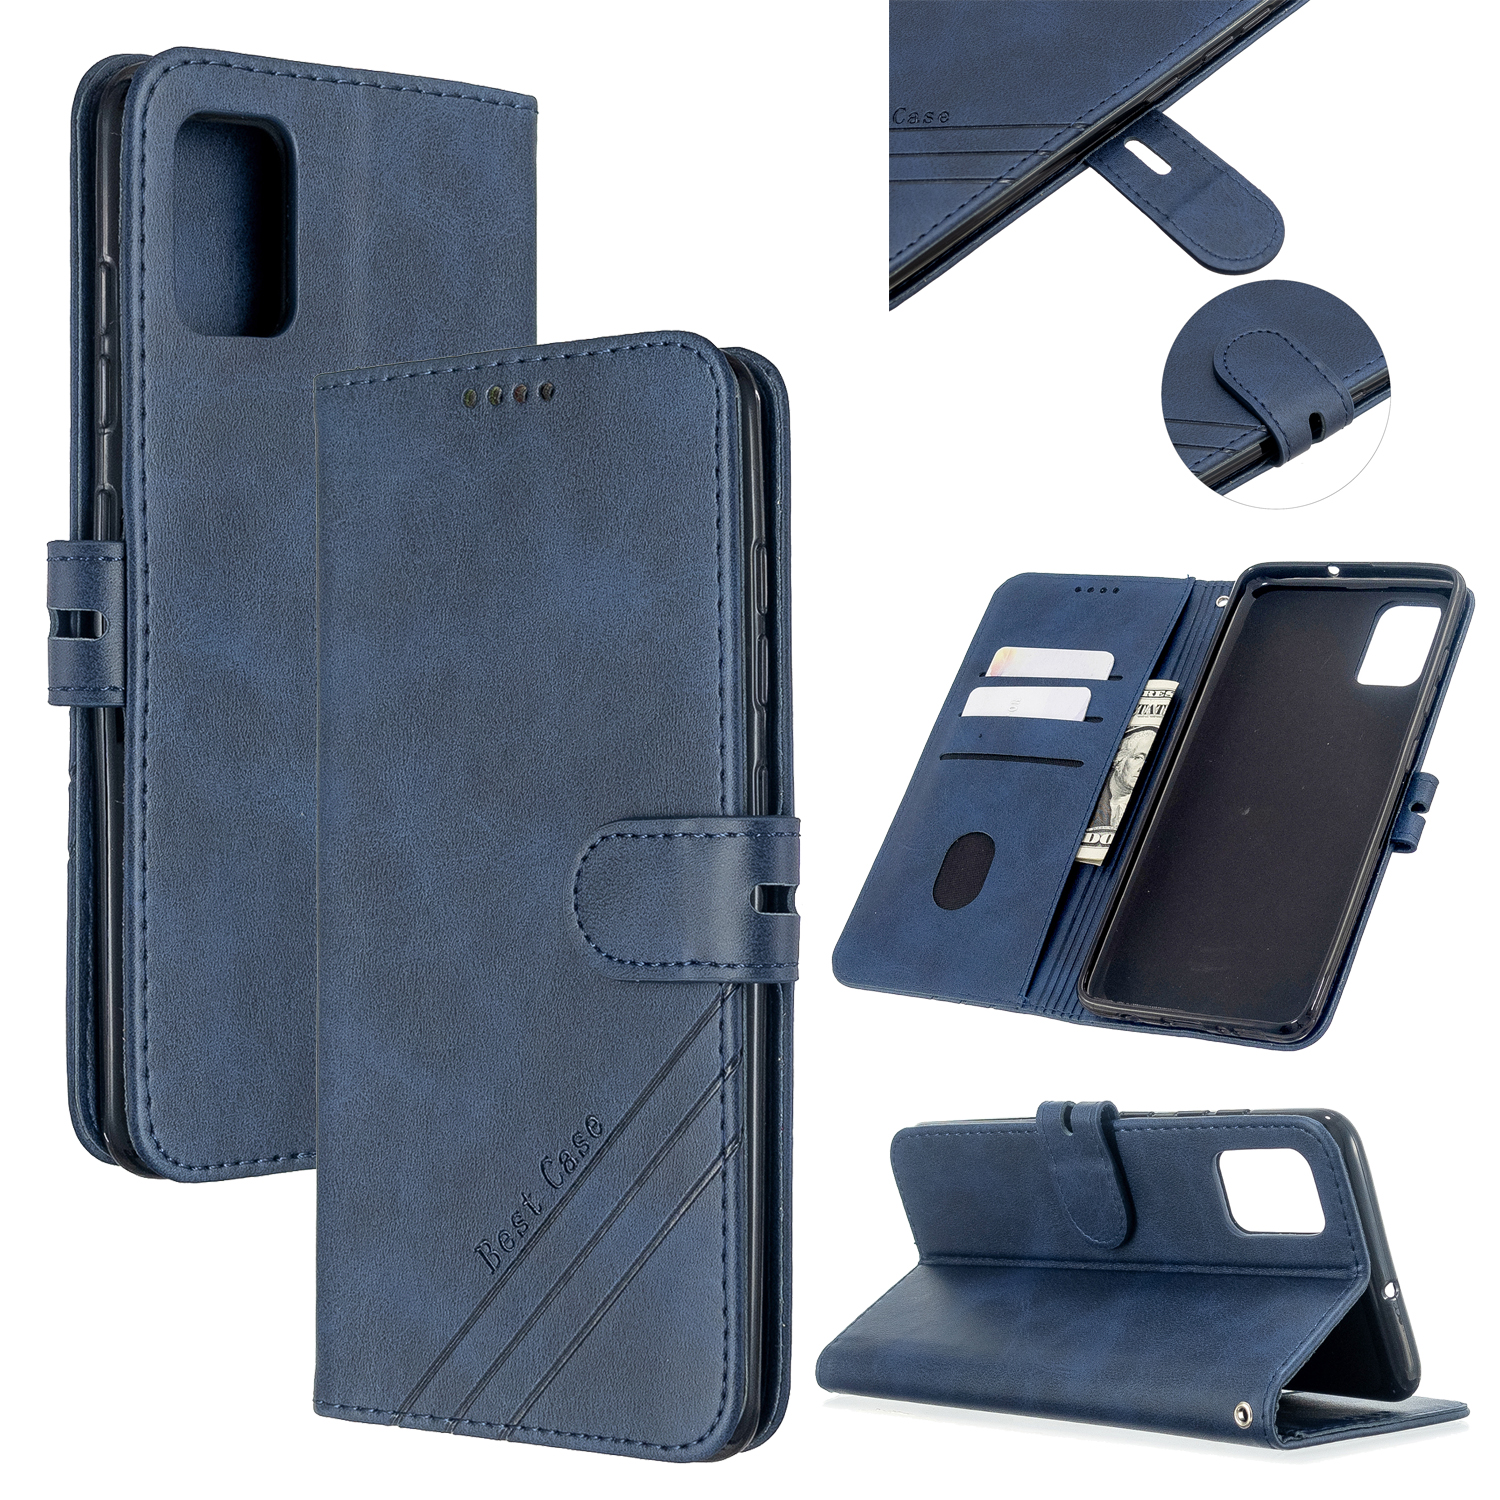 For Samsung A51/A71/M30S Case Soft Leather Cover with Denim Texture Precise Cutouts Wallet Design Buckle Closure Smartphone Shell  blue